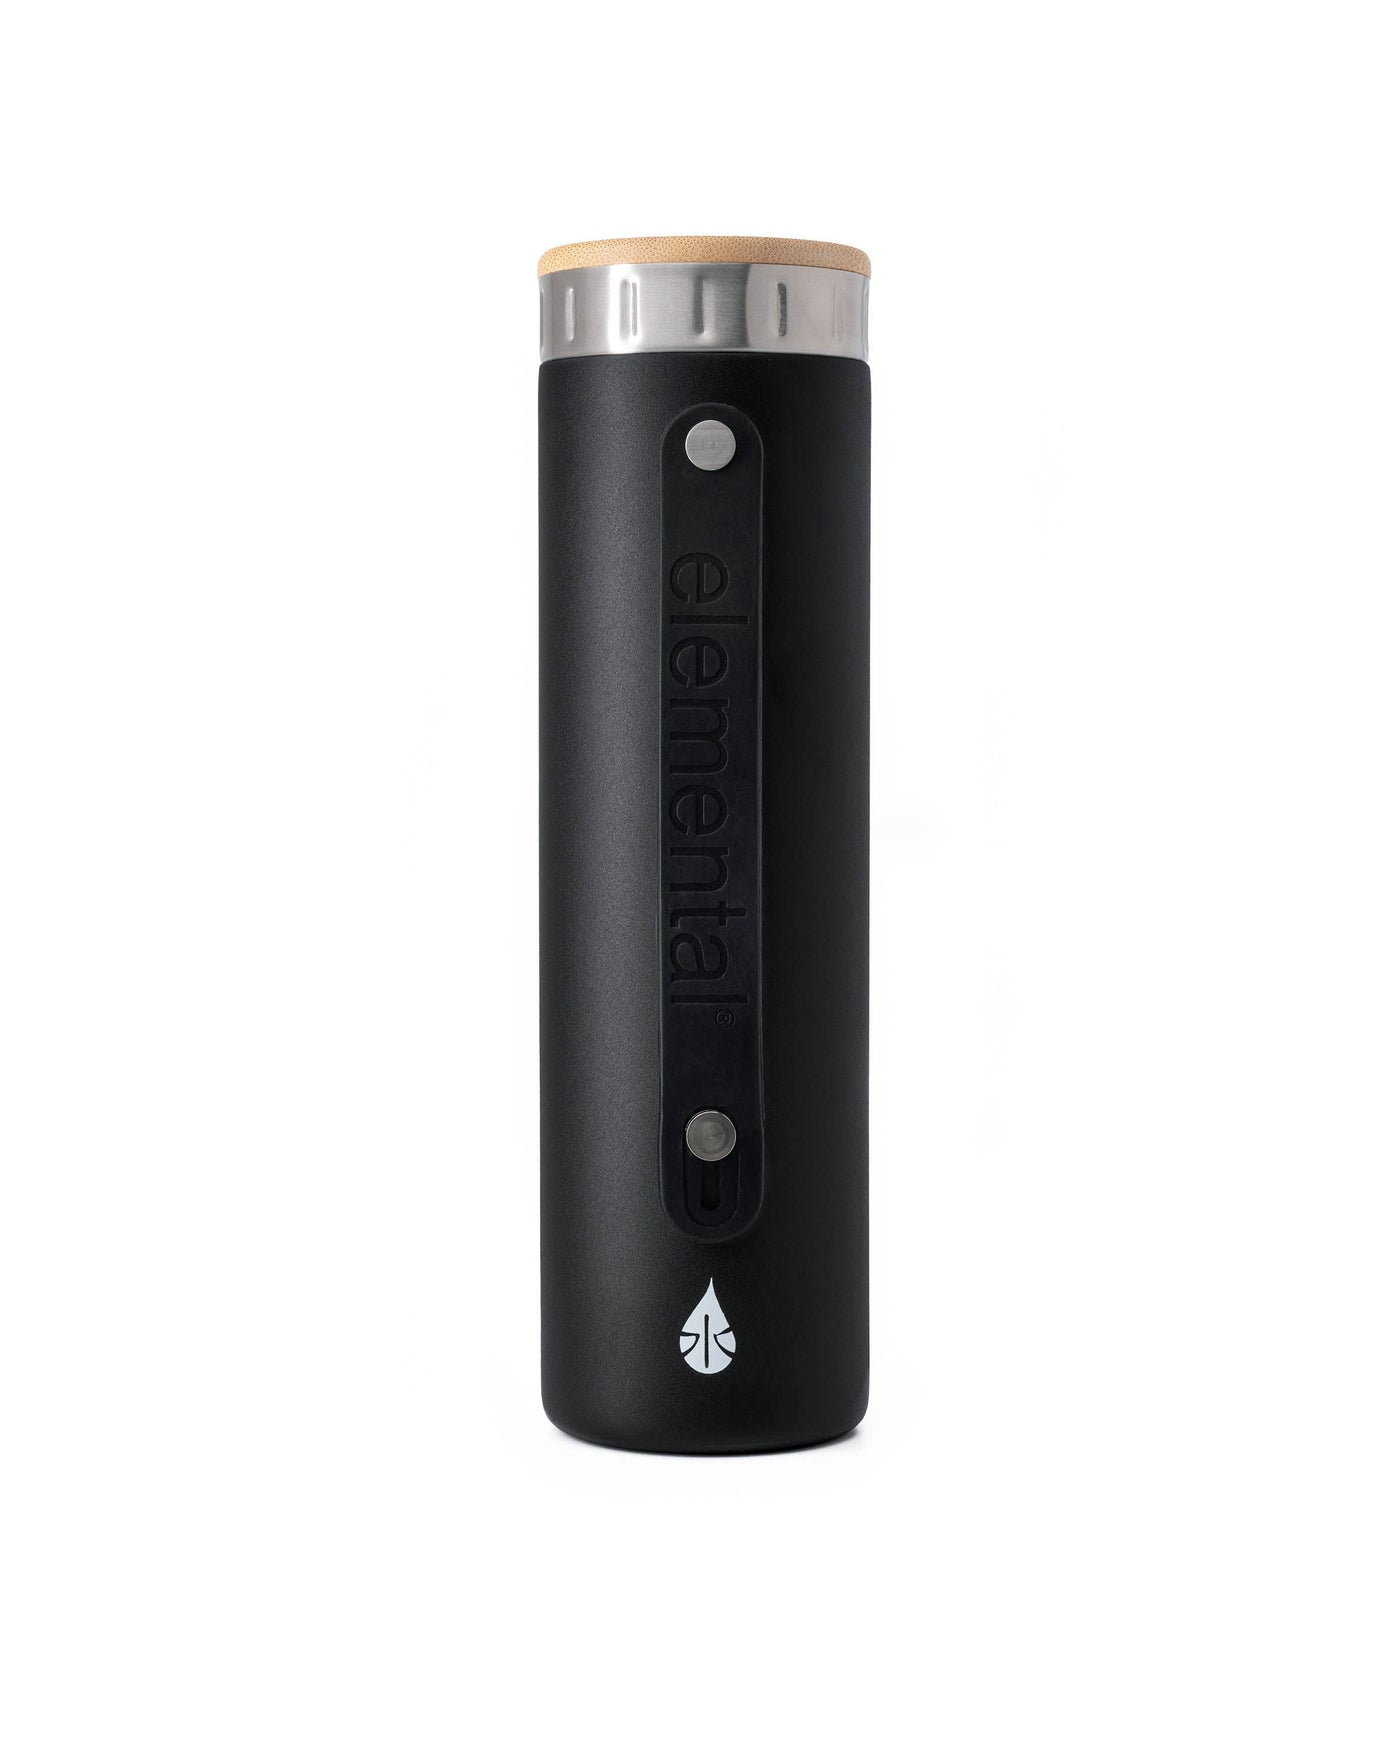 New Elemental Stainless Steel Water Bottle - 20oz Matte Black